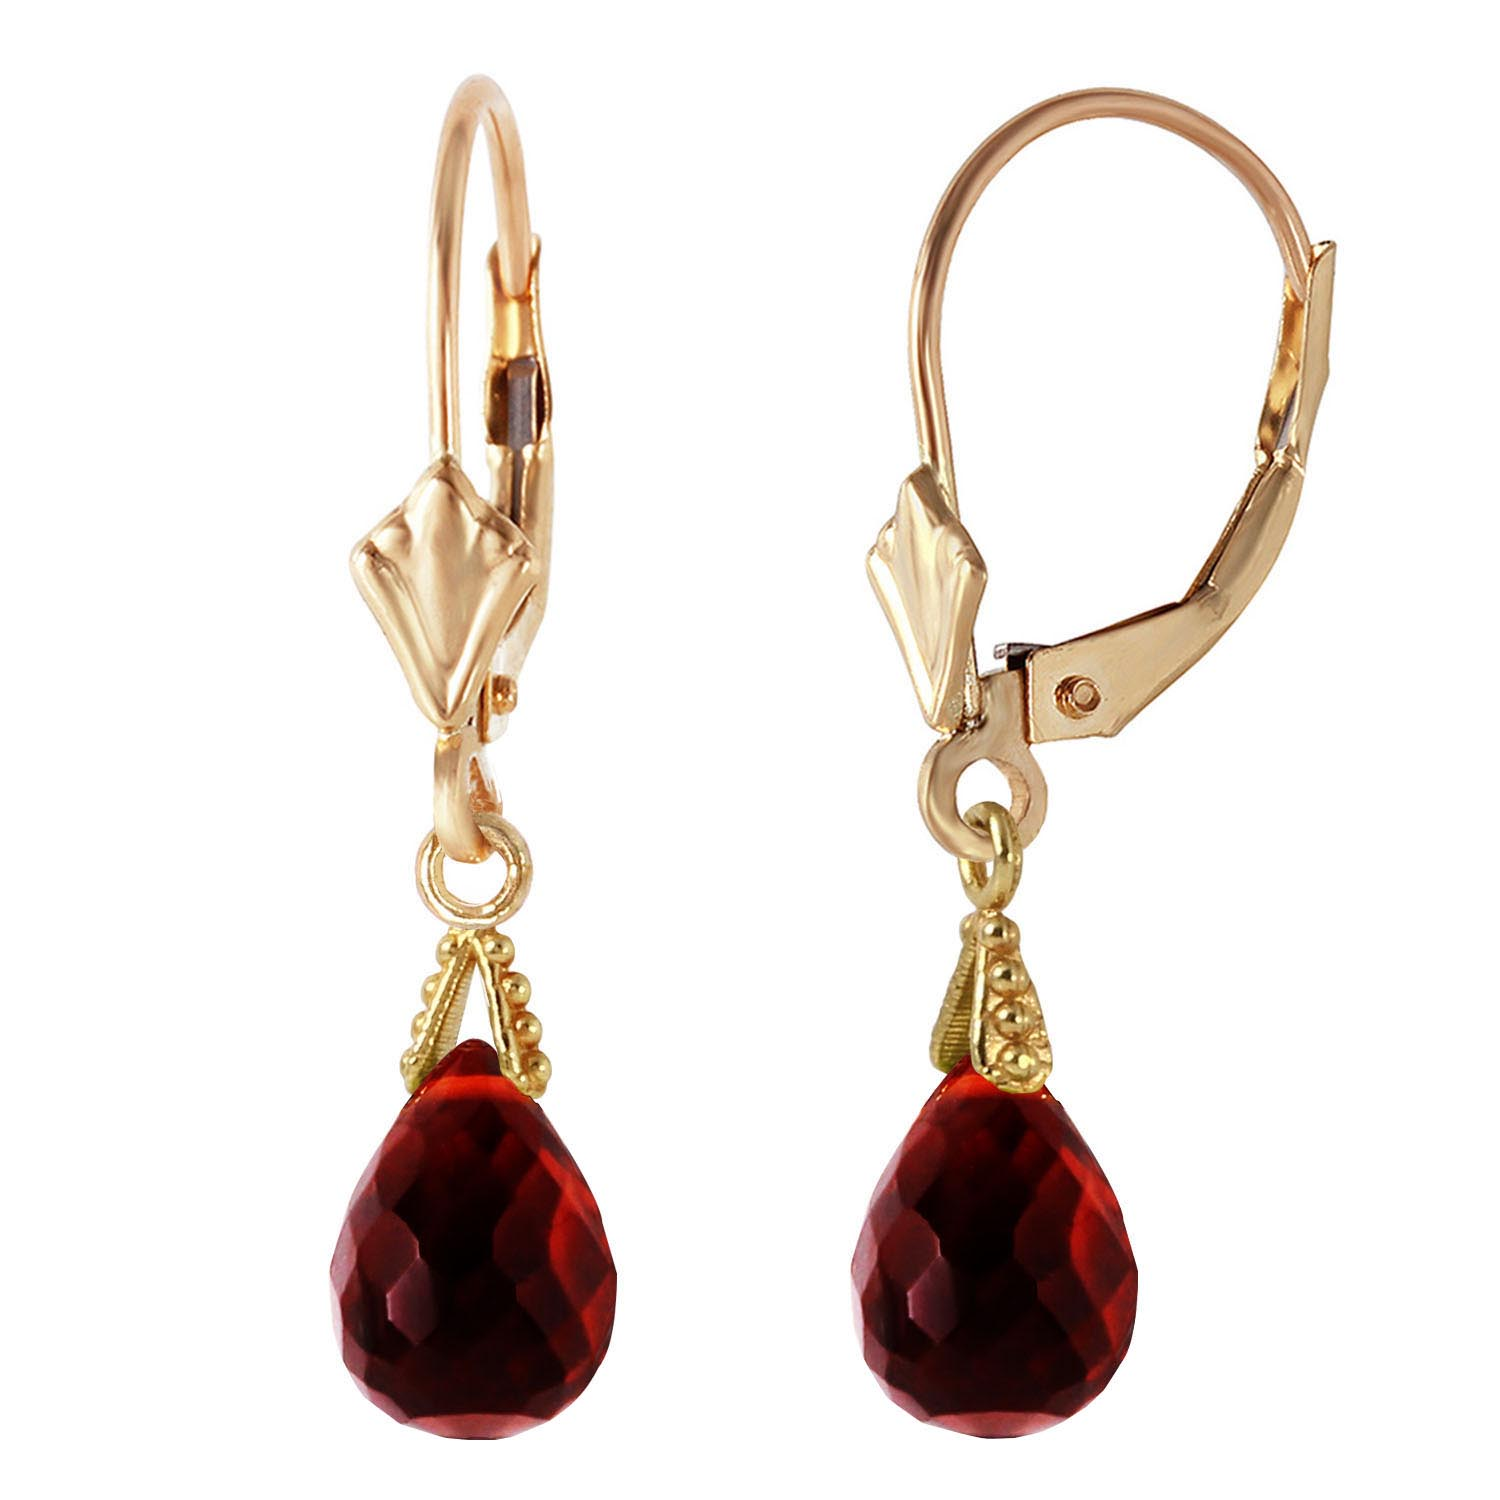 Garnet Droplet Briolette Earrings 4.5ctw in 9ct Gold